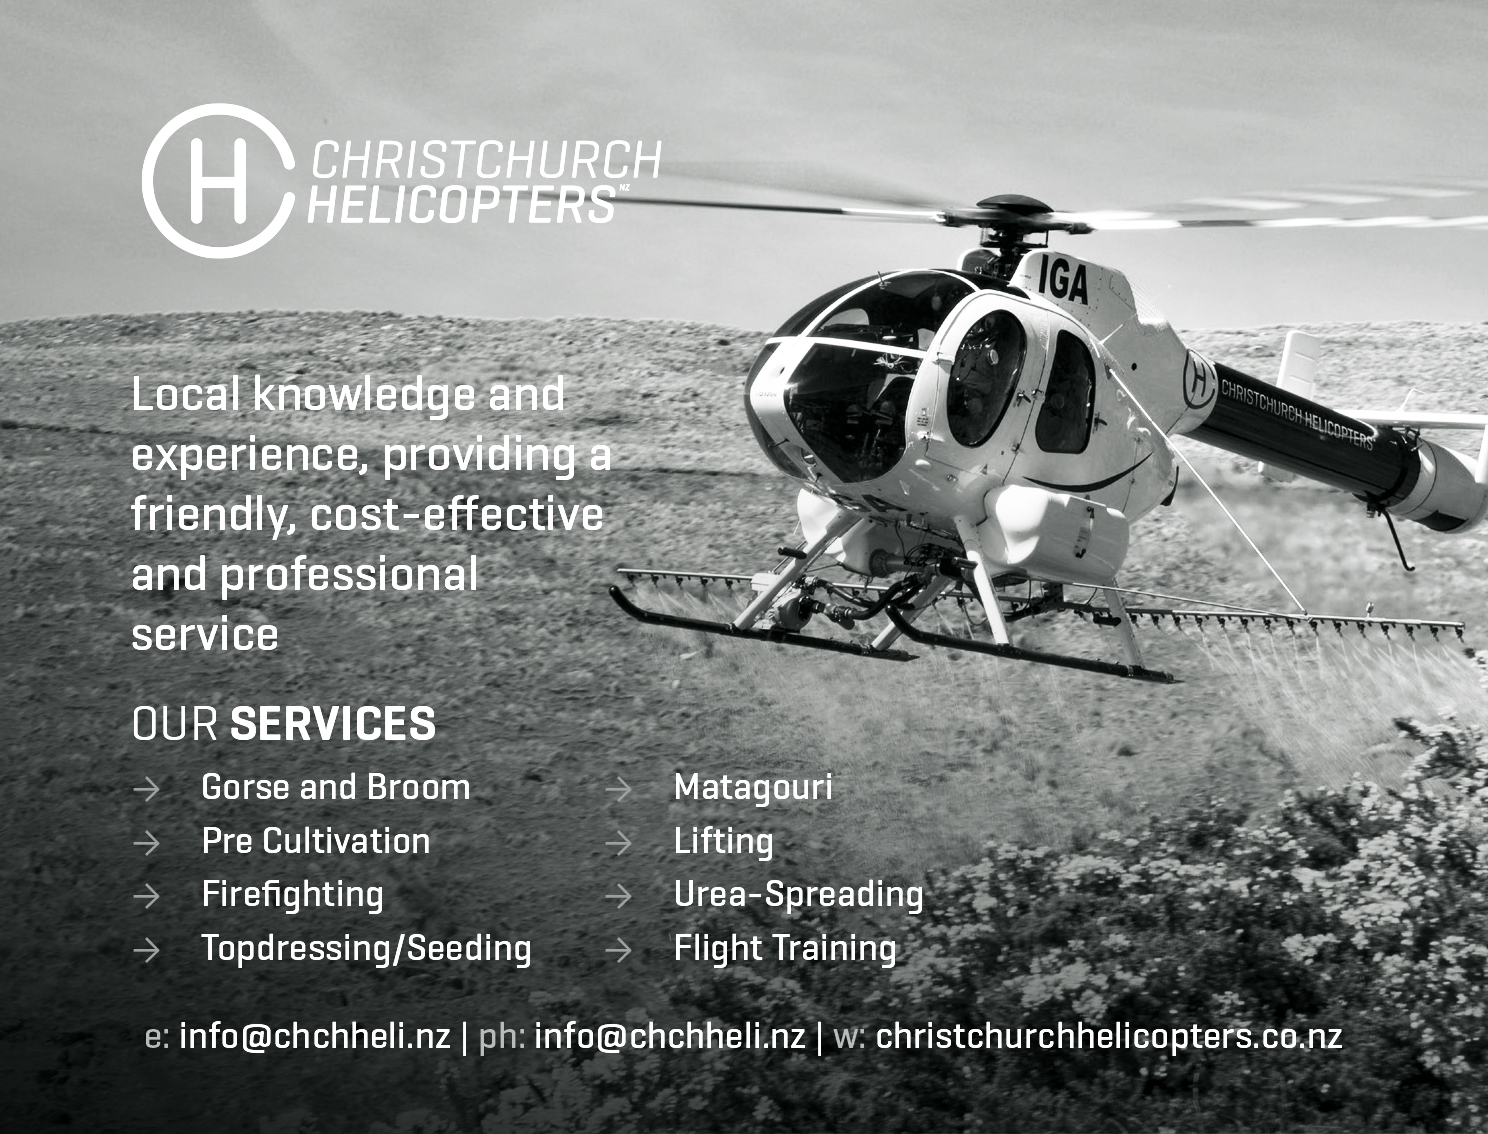 Christchurch Helicopters2021